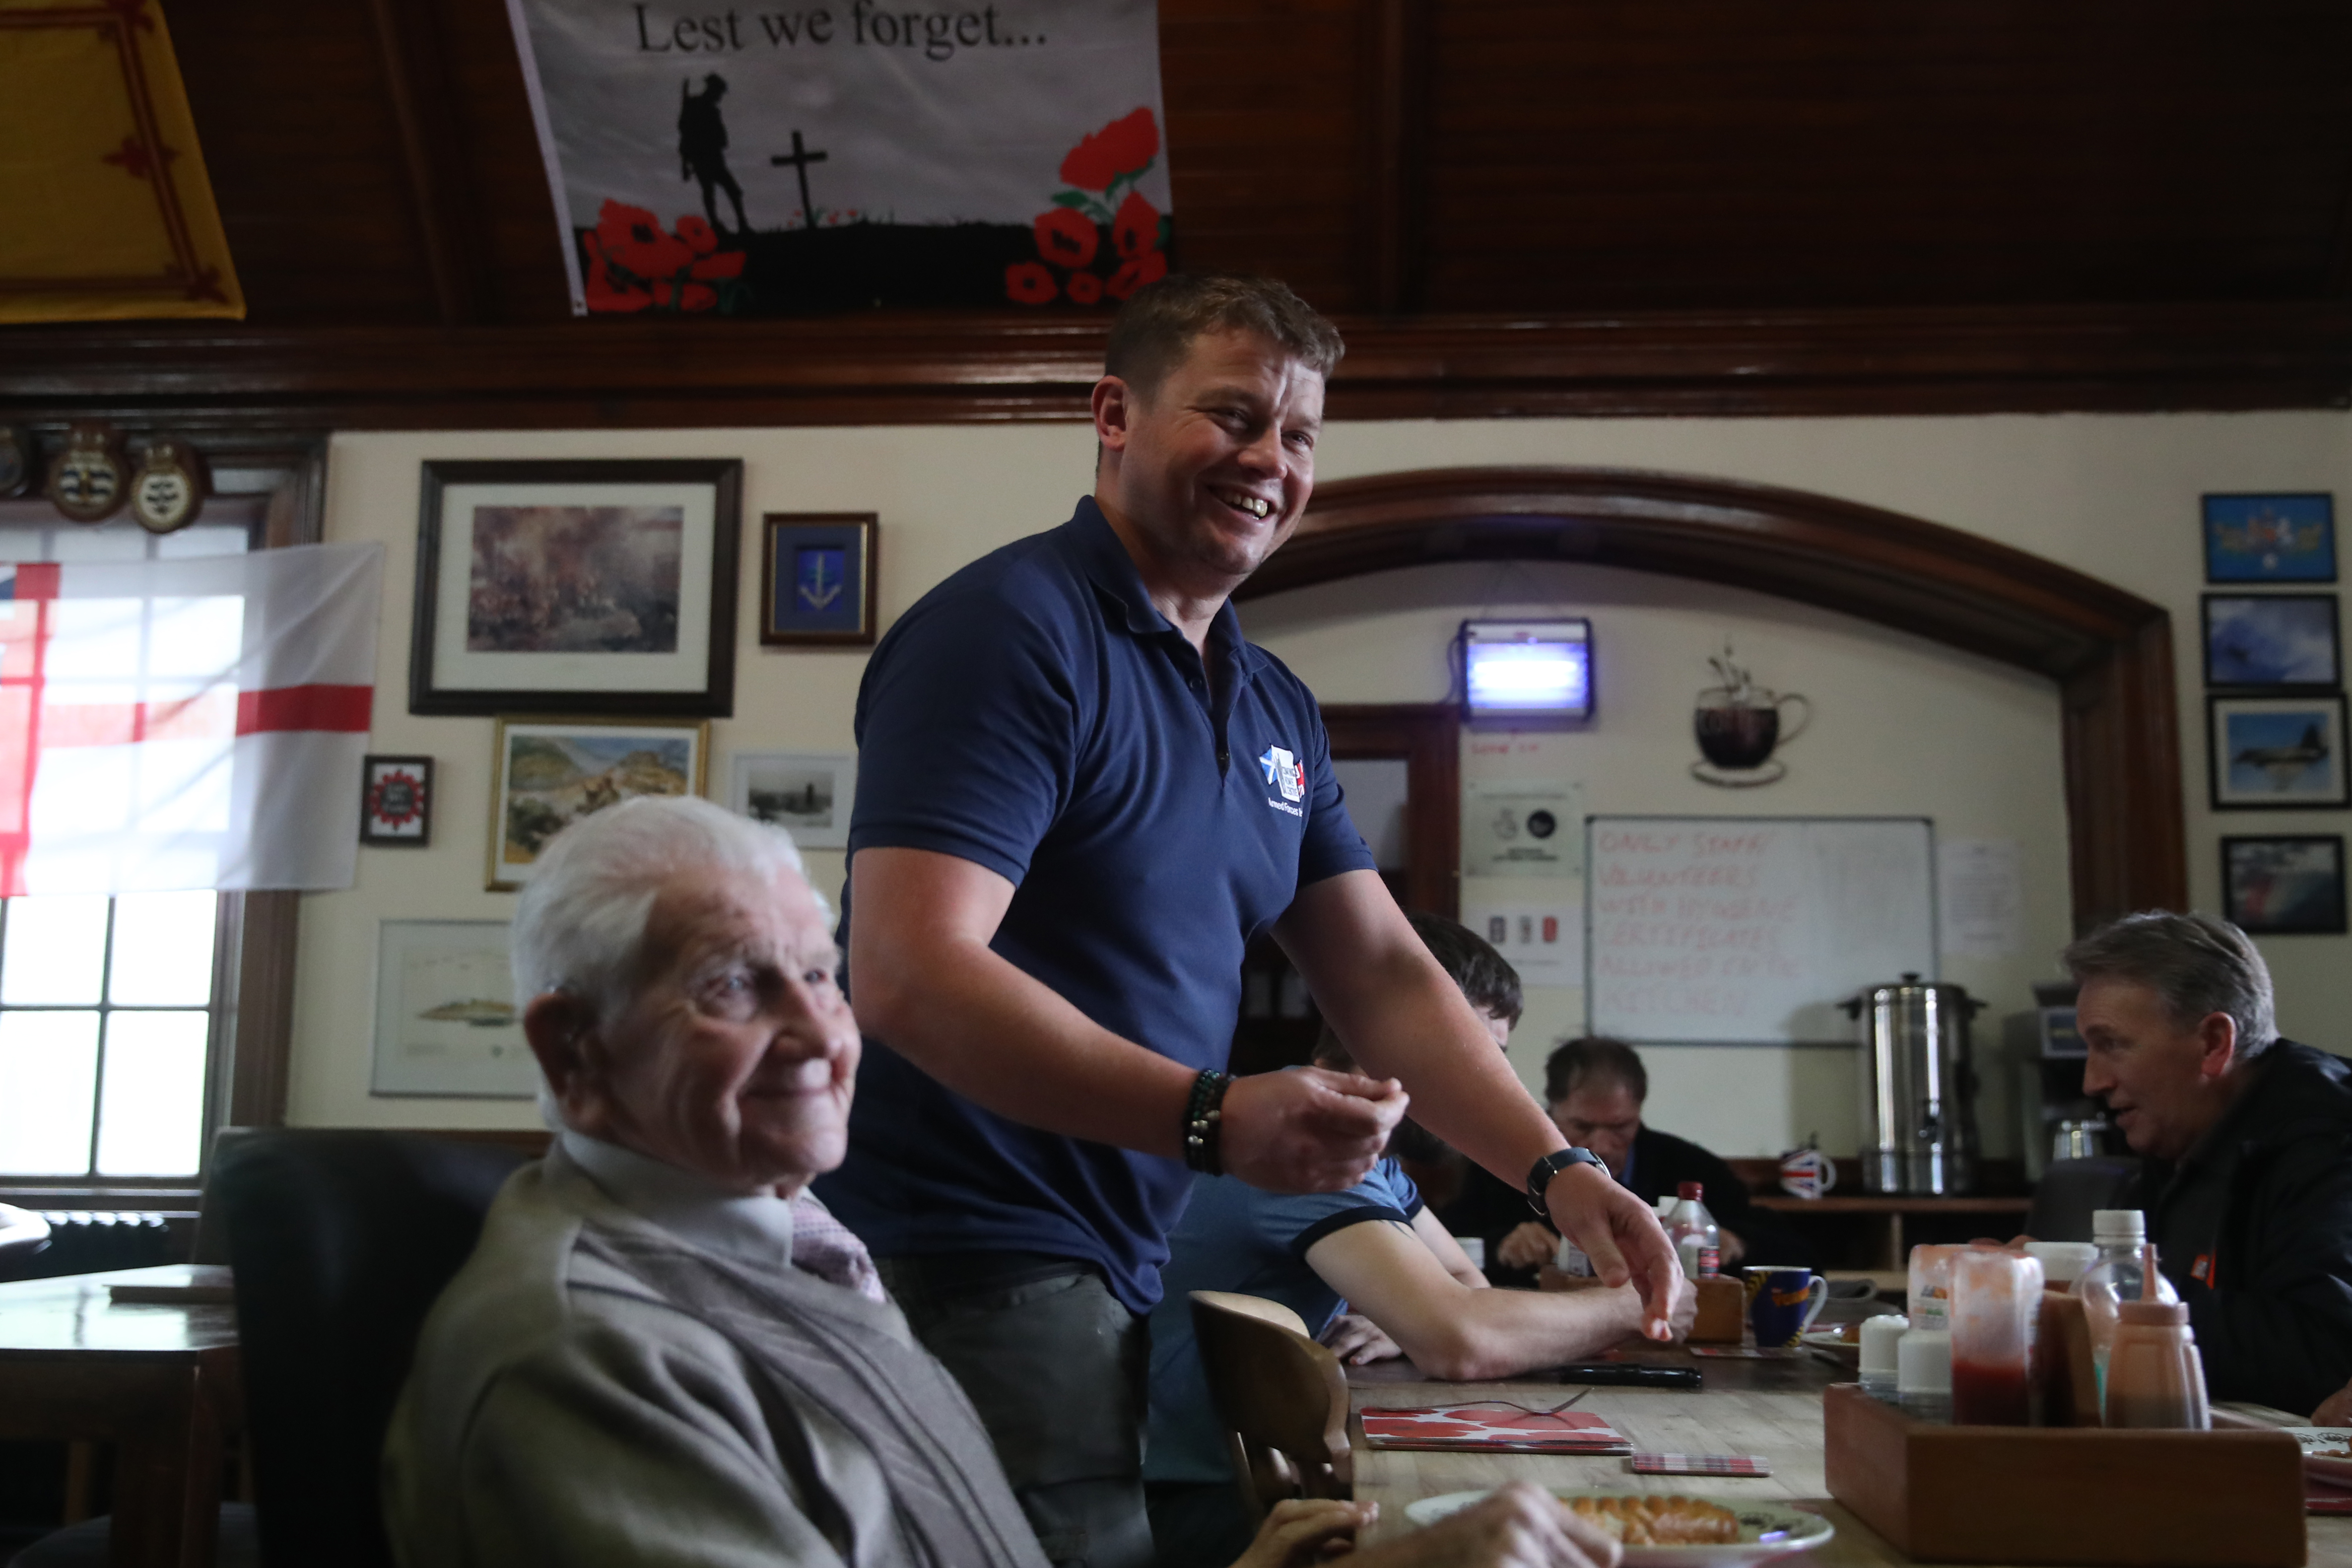 Adam Edwards works closely with veterans of all ages at The Coming Home Centre